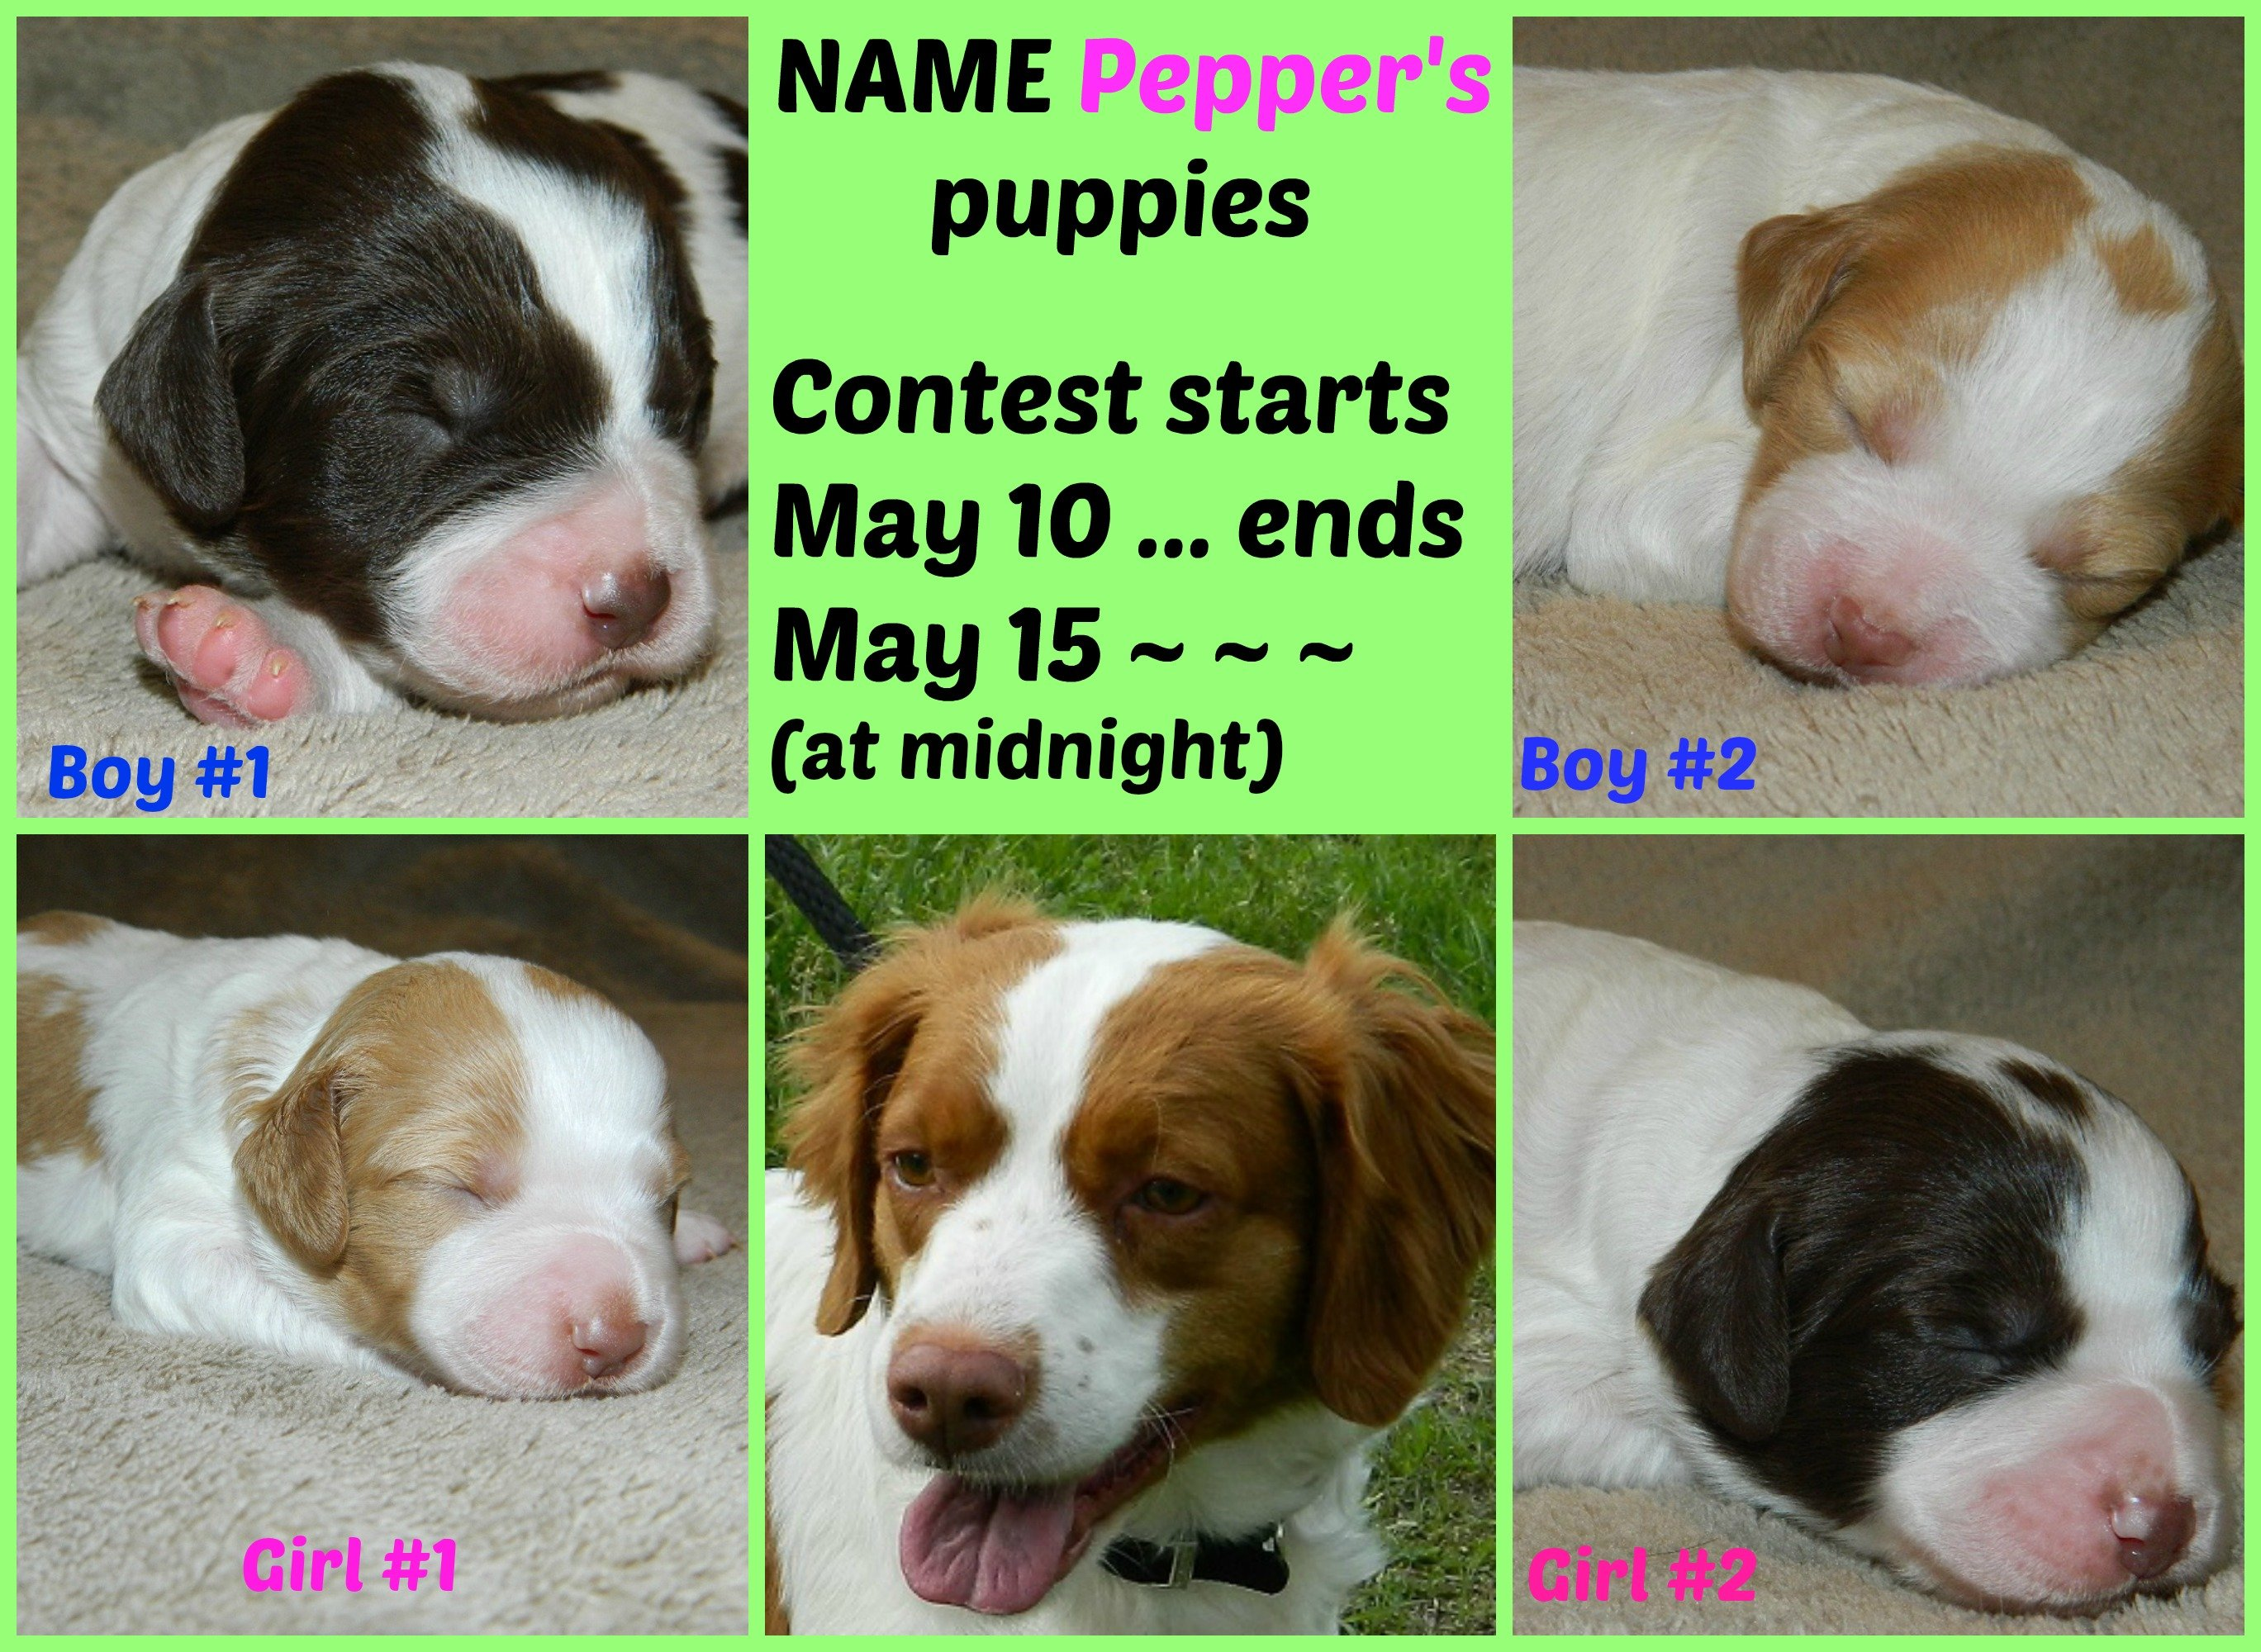 Name Pepper's Puppies